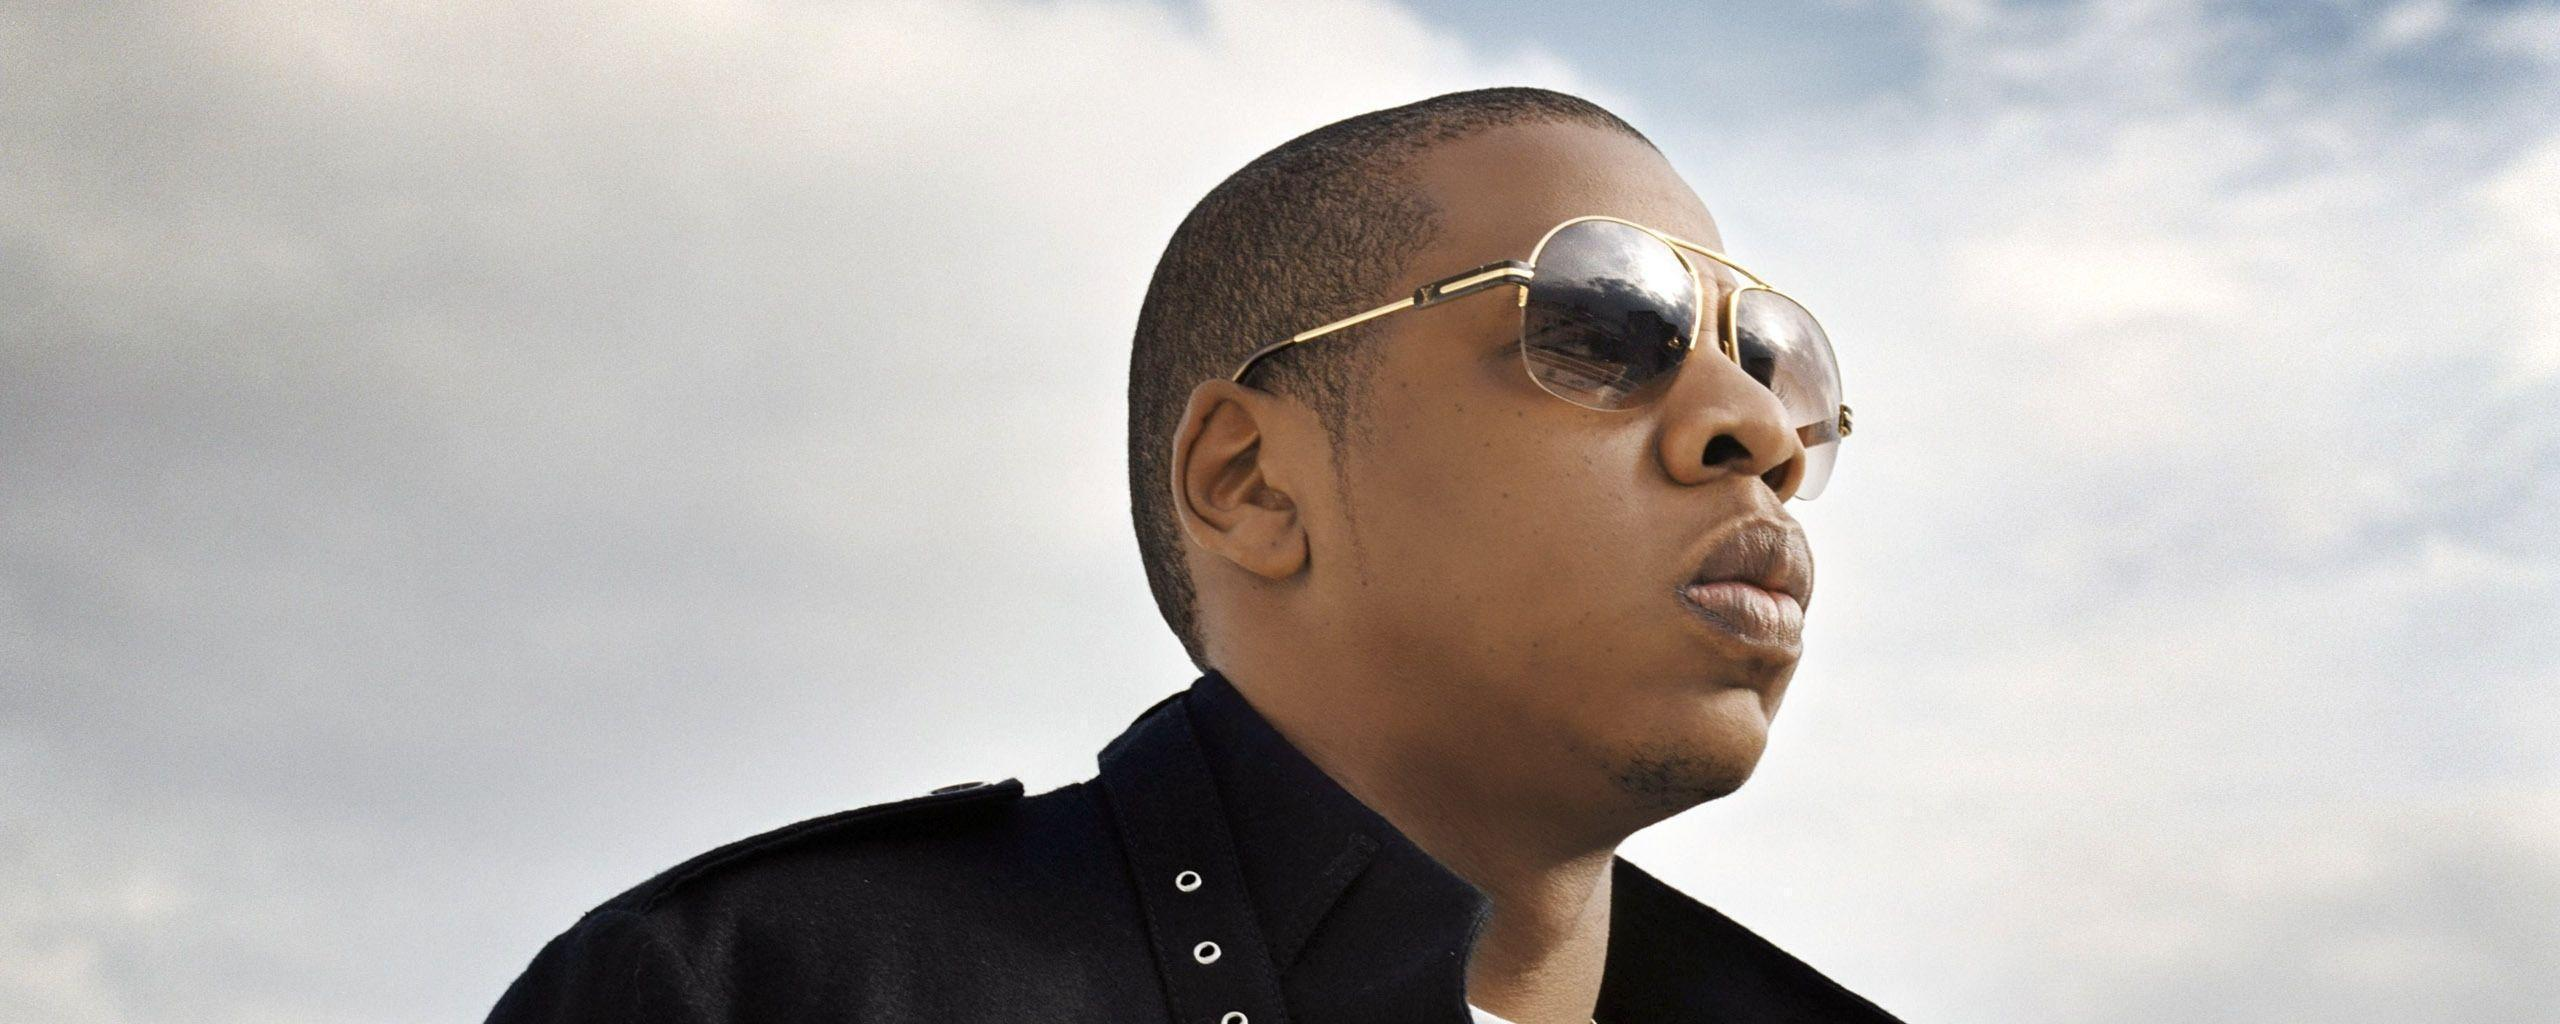 Download Wallpaper 2560x1024 Jay-z, Sunglasses, Sky, View, Singer ...